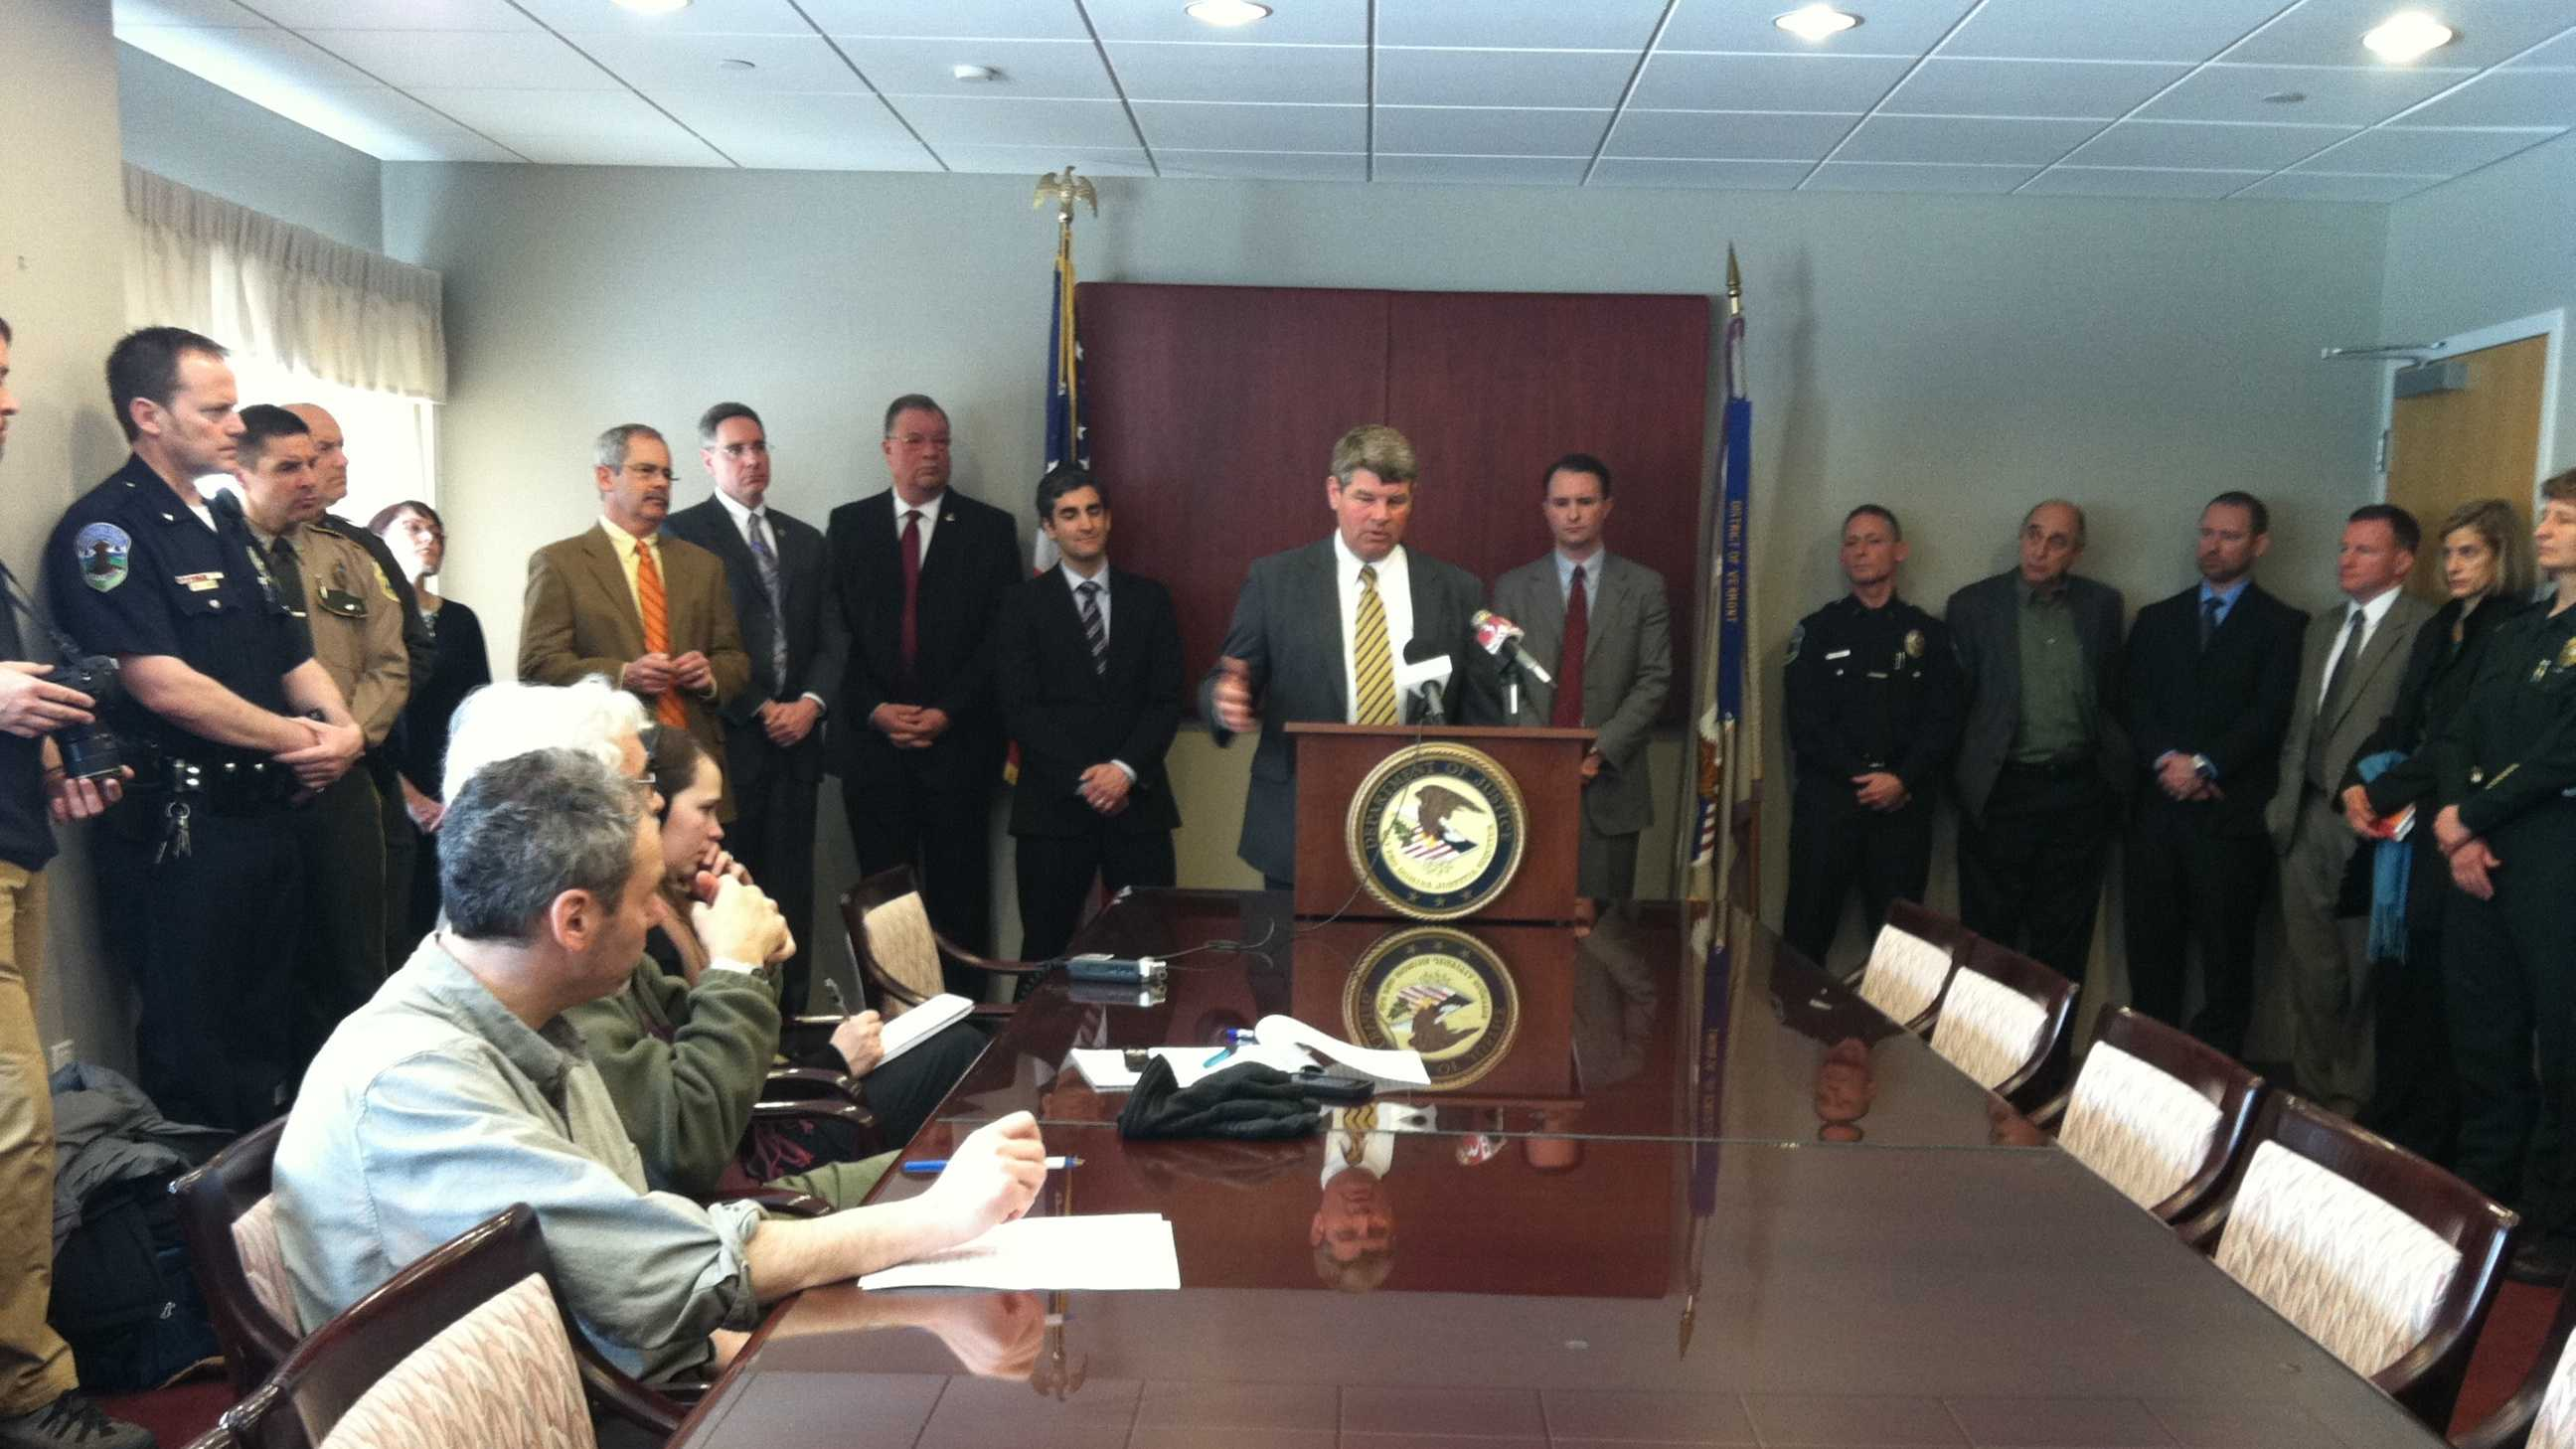 04-15-13 Heroin trafficking increases in Vt. - img